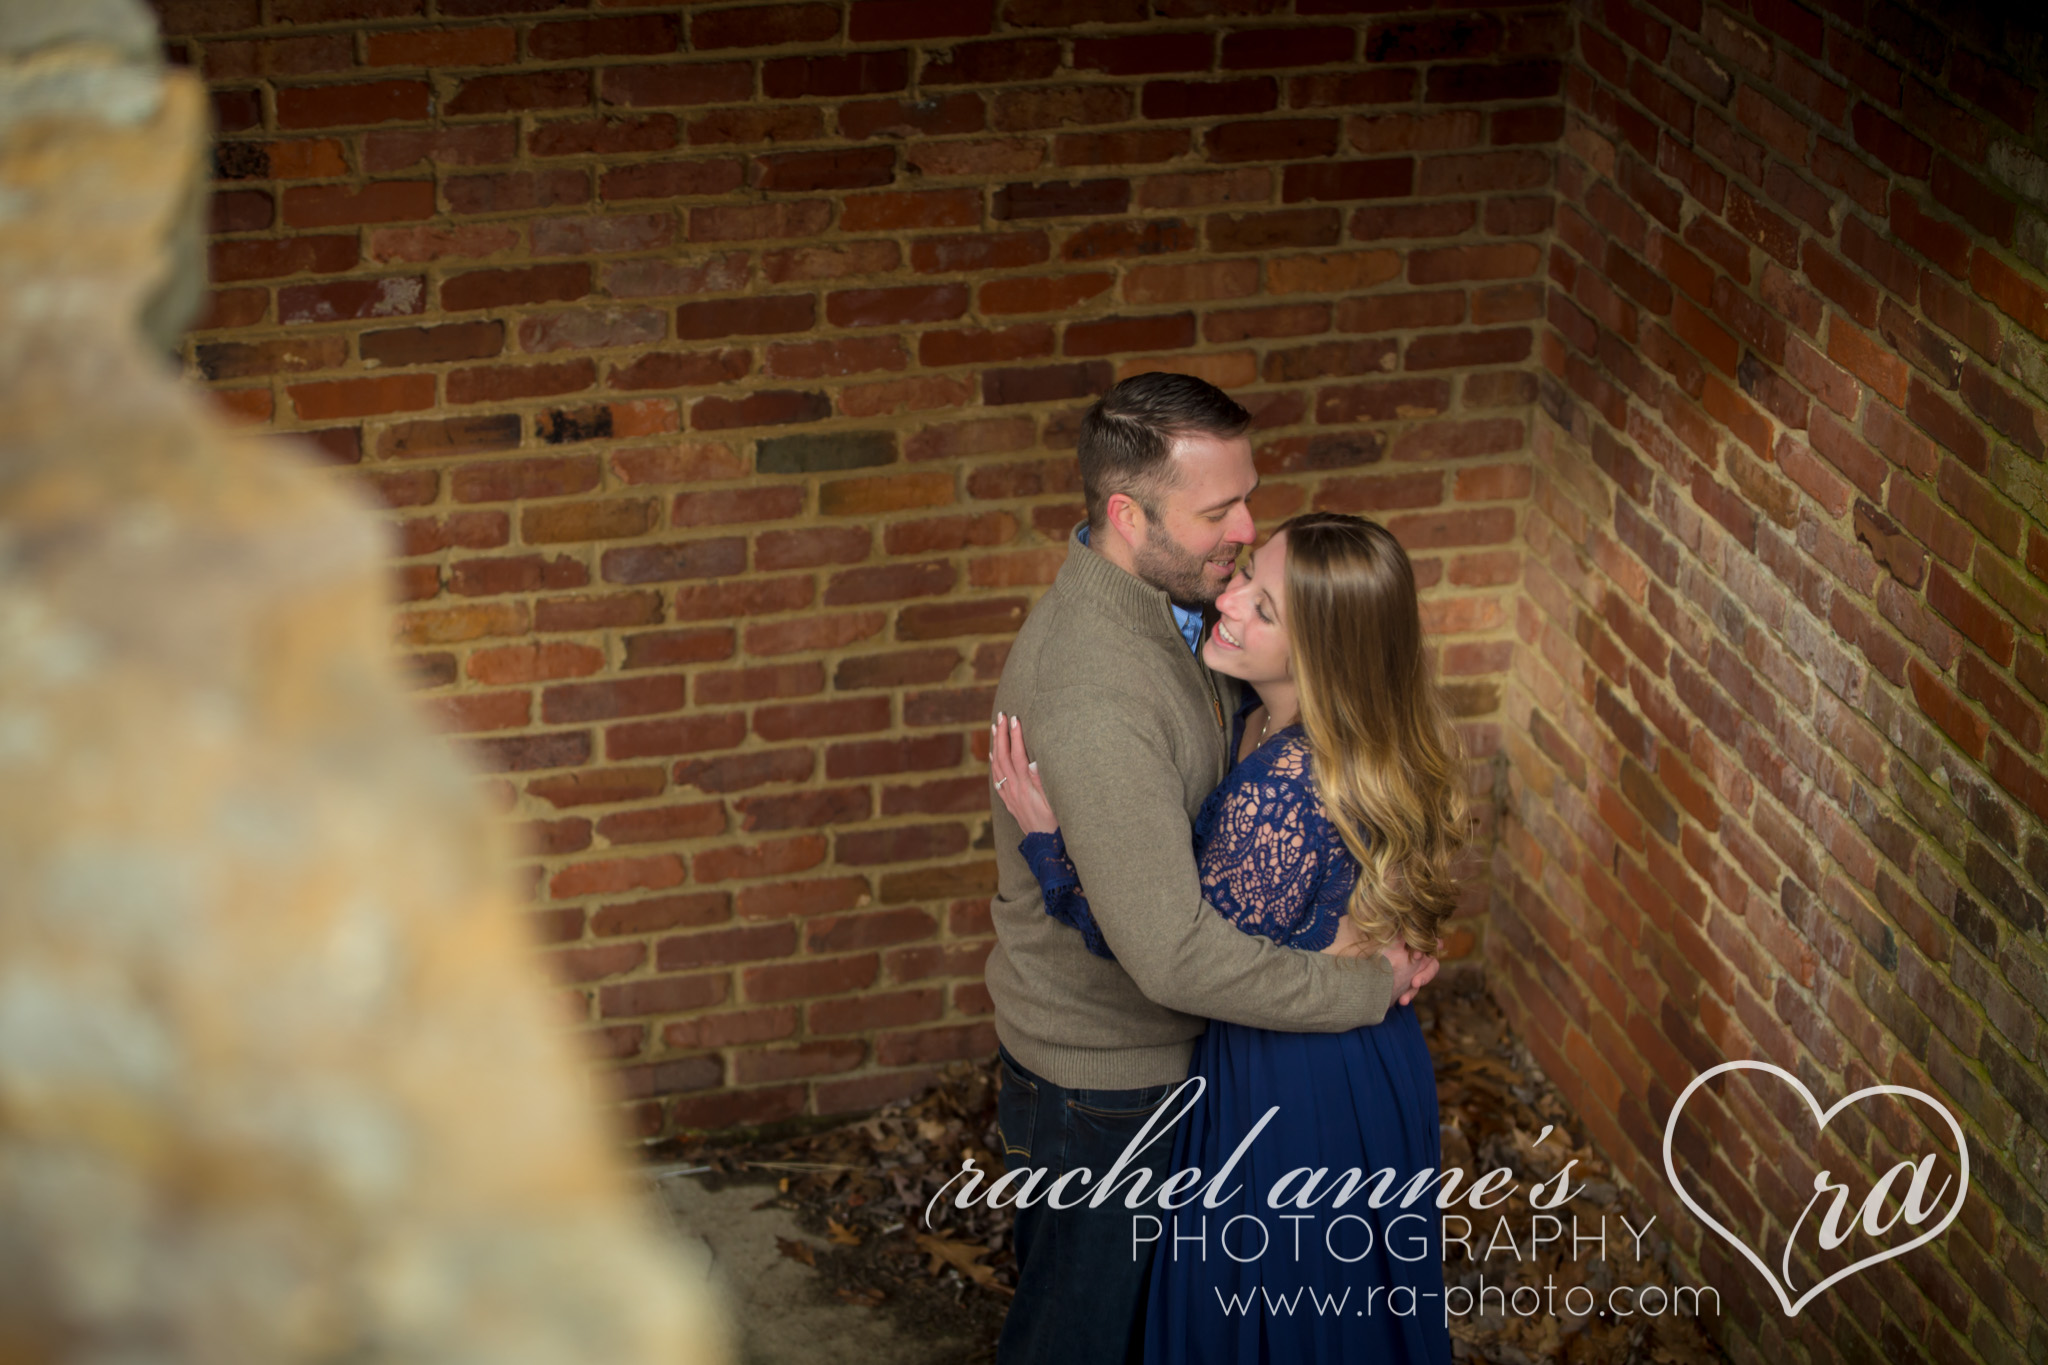 086-JKM-DUBOIS-PA-ENGAGEMENT-PHOTOGRAPHY.jpg